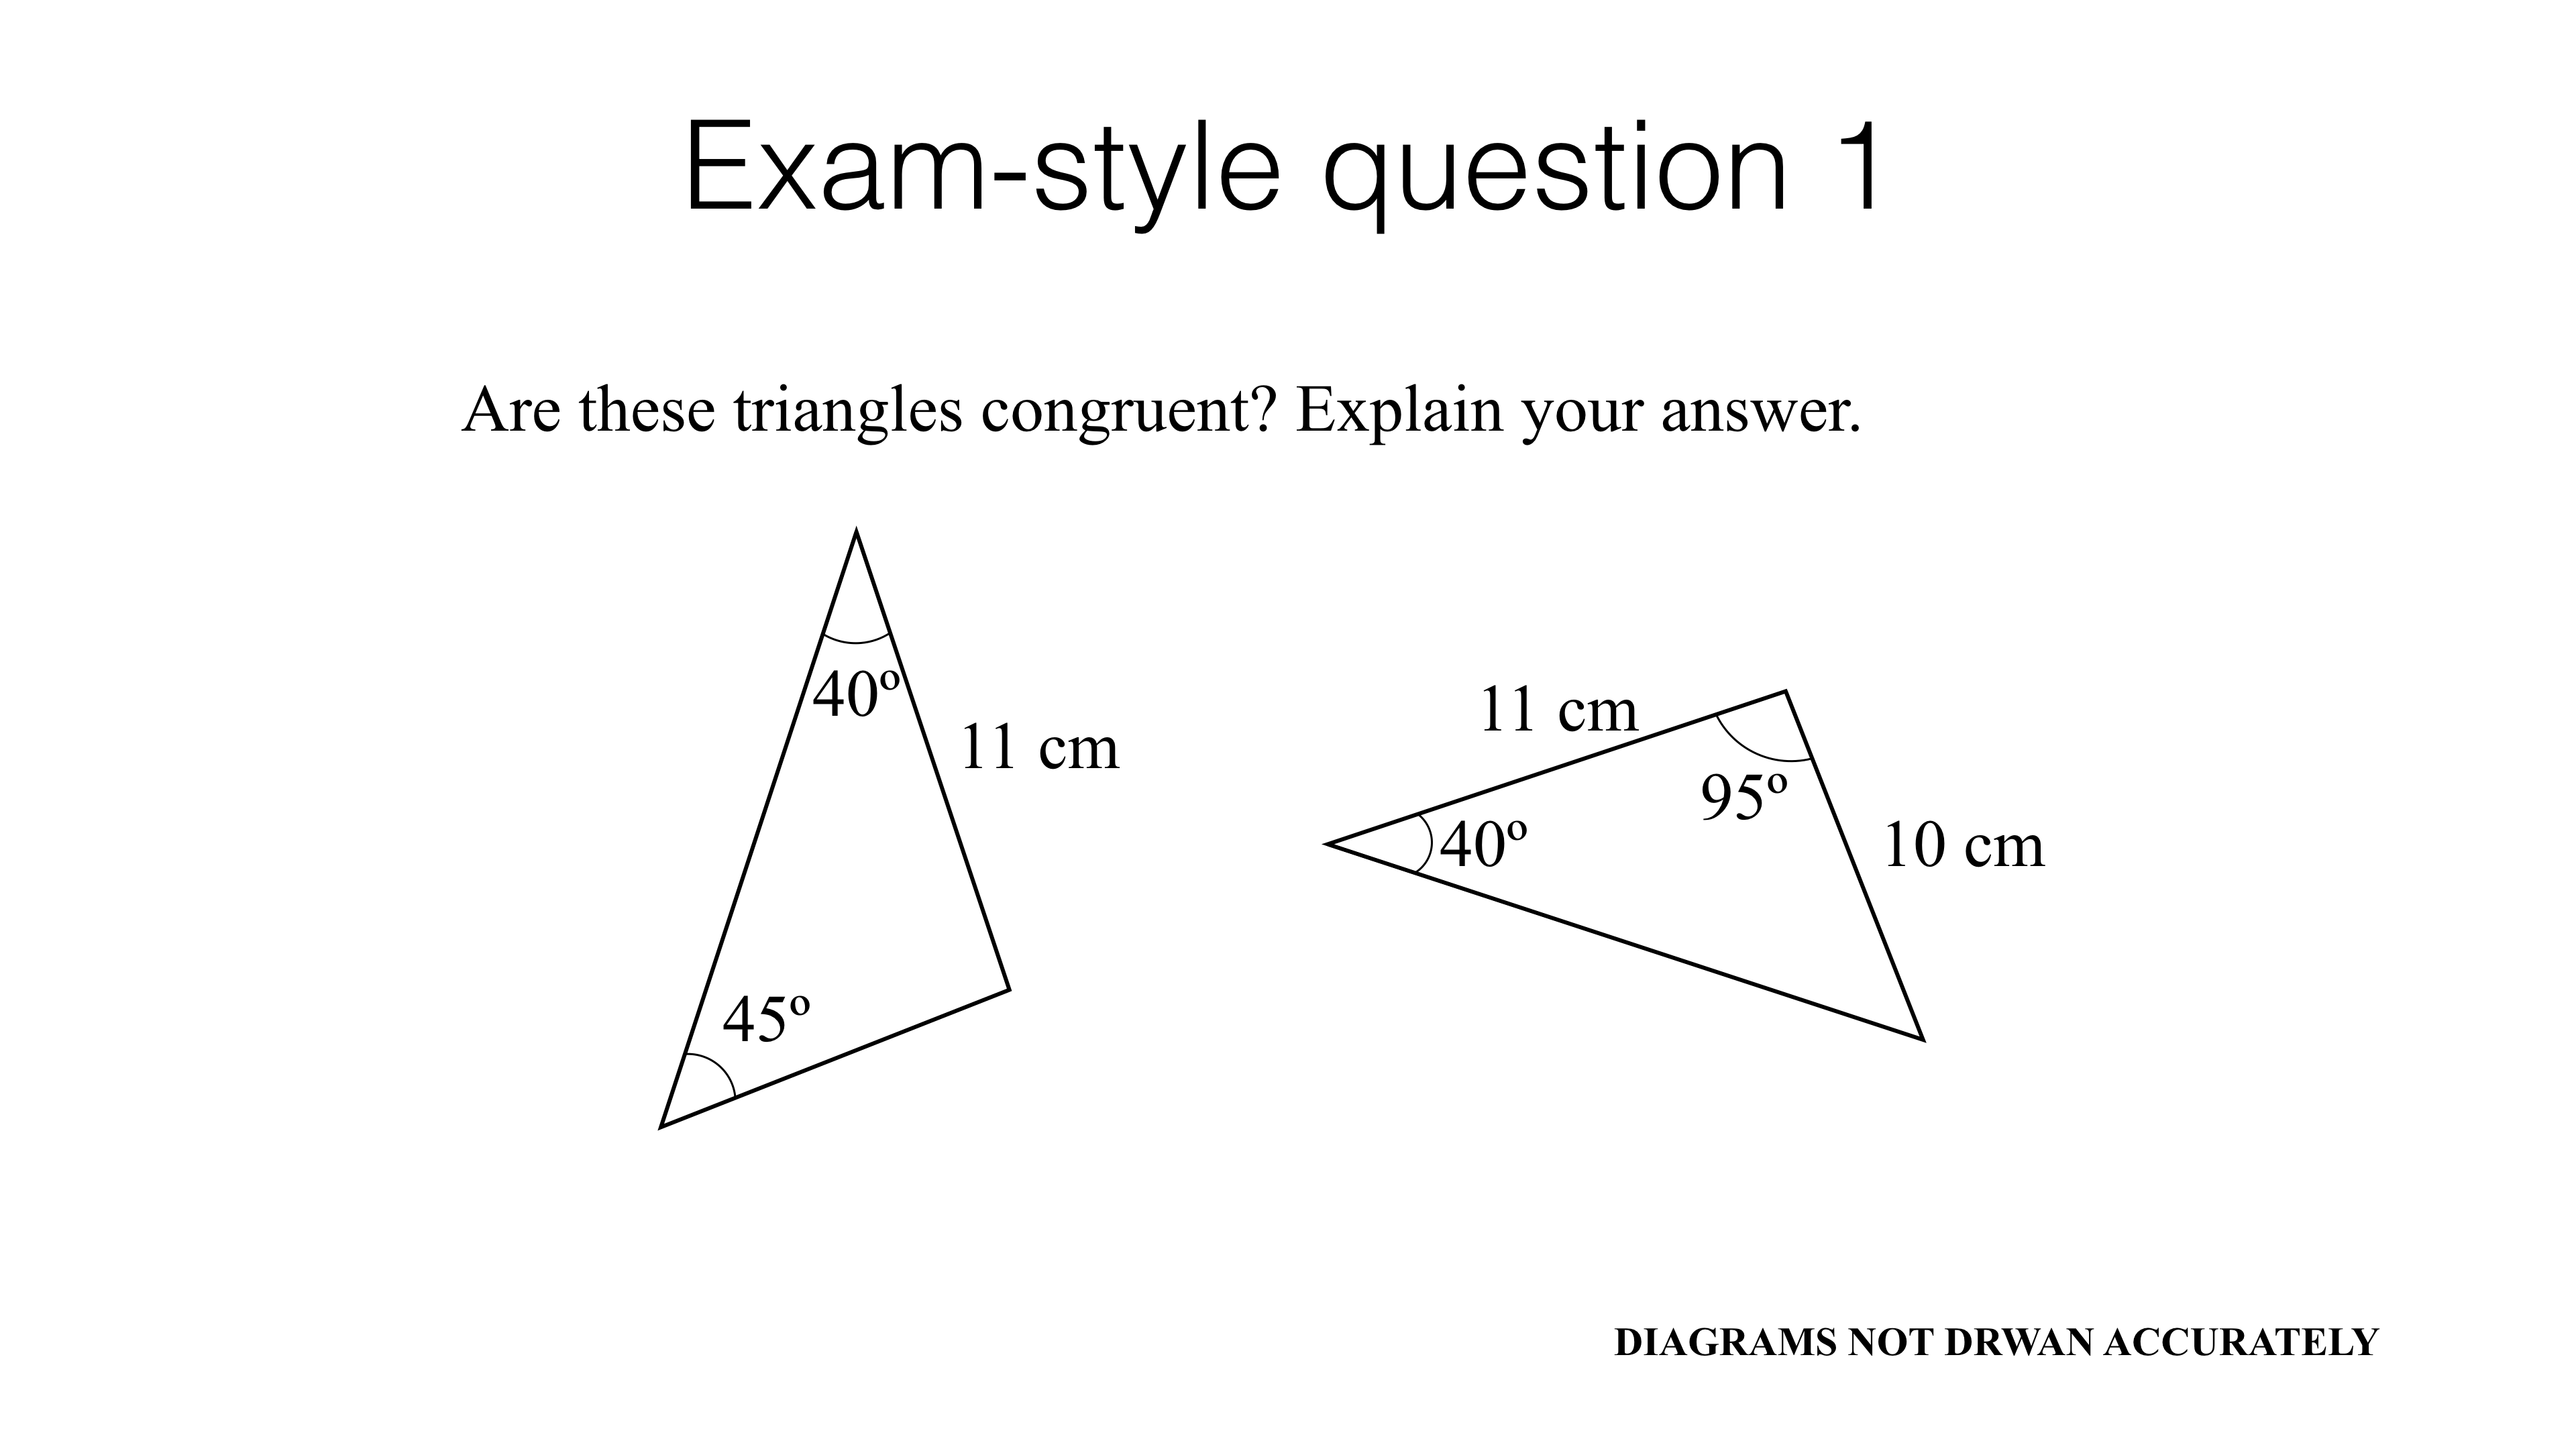 Math Teacher Mambo  Puzzle Sheet likewise Proving Congruent Triangles SSS   SAS worksheet   TpT in addition How to Prove Triangles Congruent   SSS  SAS  ASA  AAS Rules additionally Worksheet Congruent Triangles Sss And Sas   Livinghealthybulletin also Proving Congruence with SSS and SAS   Wyzant Resources together with Fillable Online Worksheet 44 Name 45 SSS SAS ASA Practice 2 Date Mod together with 4 4 Proving Triangles Congruent SSS and SAS over Two Days furthermore Congruent Triangles Worksheet  2 likewise Congruent Triangles Lesson Plans   Worksheets   Lesson Pla additionally G5a – Congruence criteria for triangles  SSS  SAS  ASA  RHS also Proving Congruence with SSS and SAS   Wyzant Resources in addition  also Triangle Congruence Matching Activity by Eric Douce   TpT likewise Kuta  Geometry  SSS  SAS  ASA  And AAS Congruence Part 1 besides Congruent Triangles in addition Congruent Triangles Ex les. on sss and sas congruence worksheet